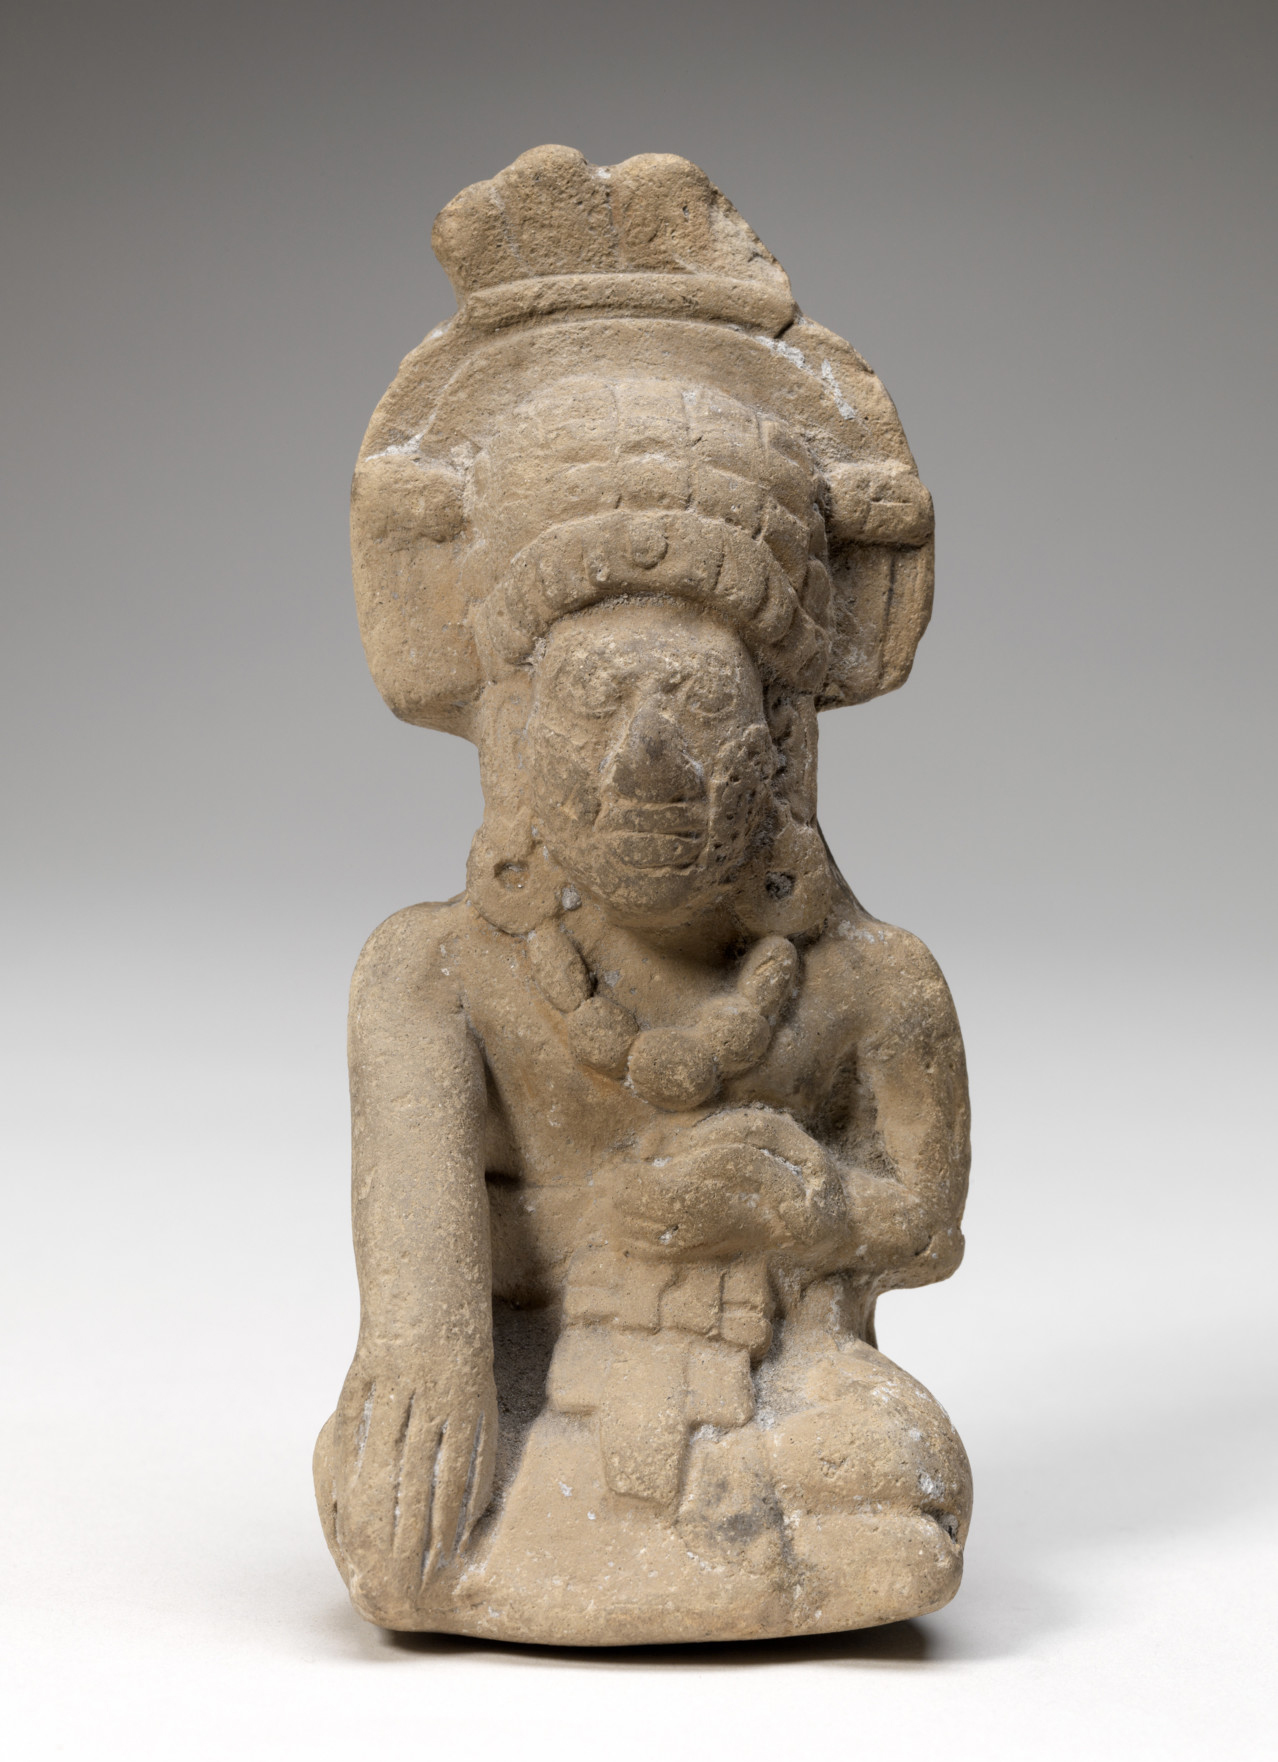 Unknown (Southern Campeche, Mayan, Mexican), Whistle figurine, Late Classic, 600-900CE. Mold-made terracotta, 5 1/16 x 2 5/16 x 2 5/8 in. Gift of Herbert D. N. Jones, Class of 1914. (21.1.3)